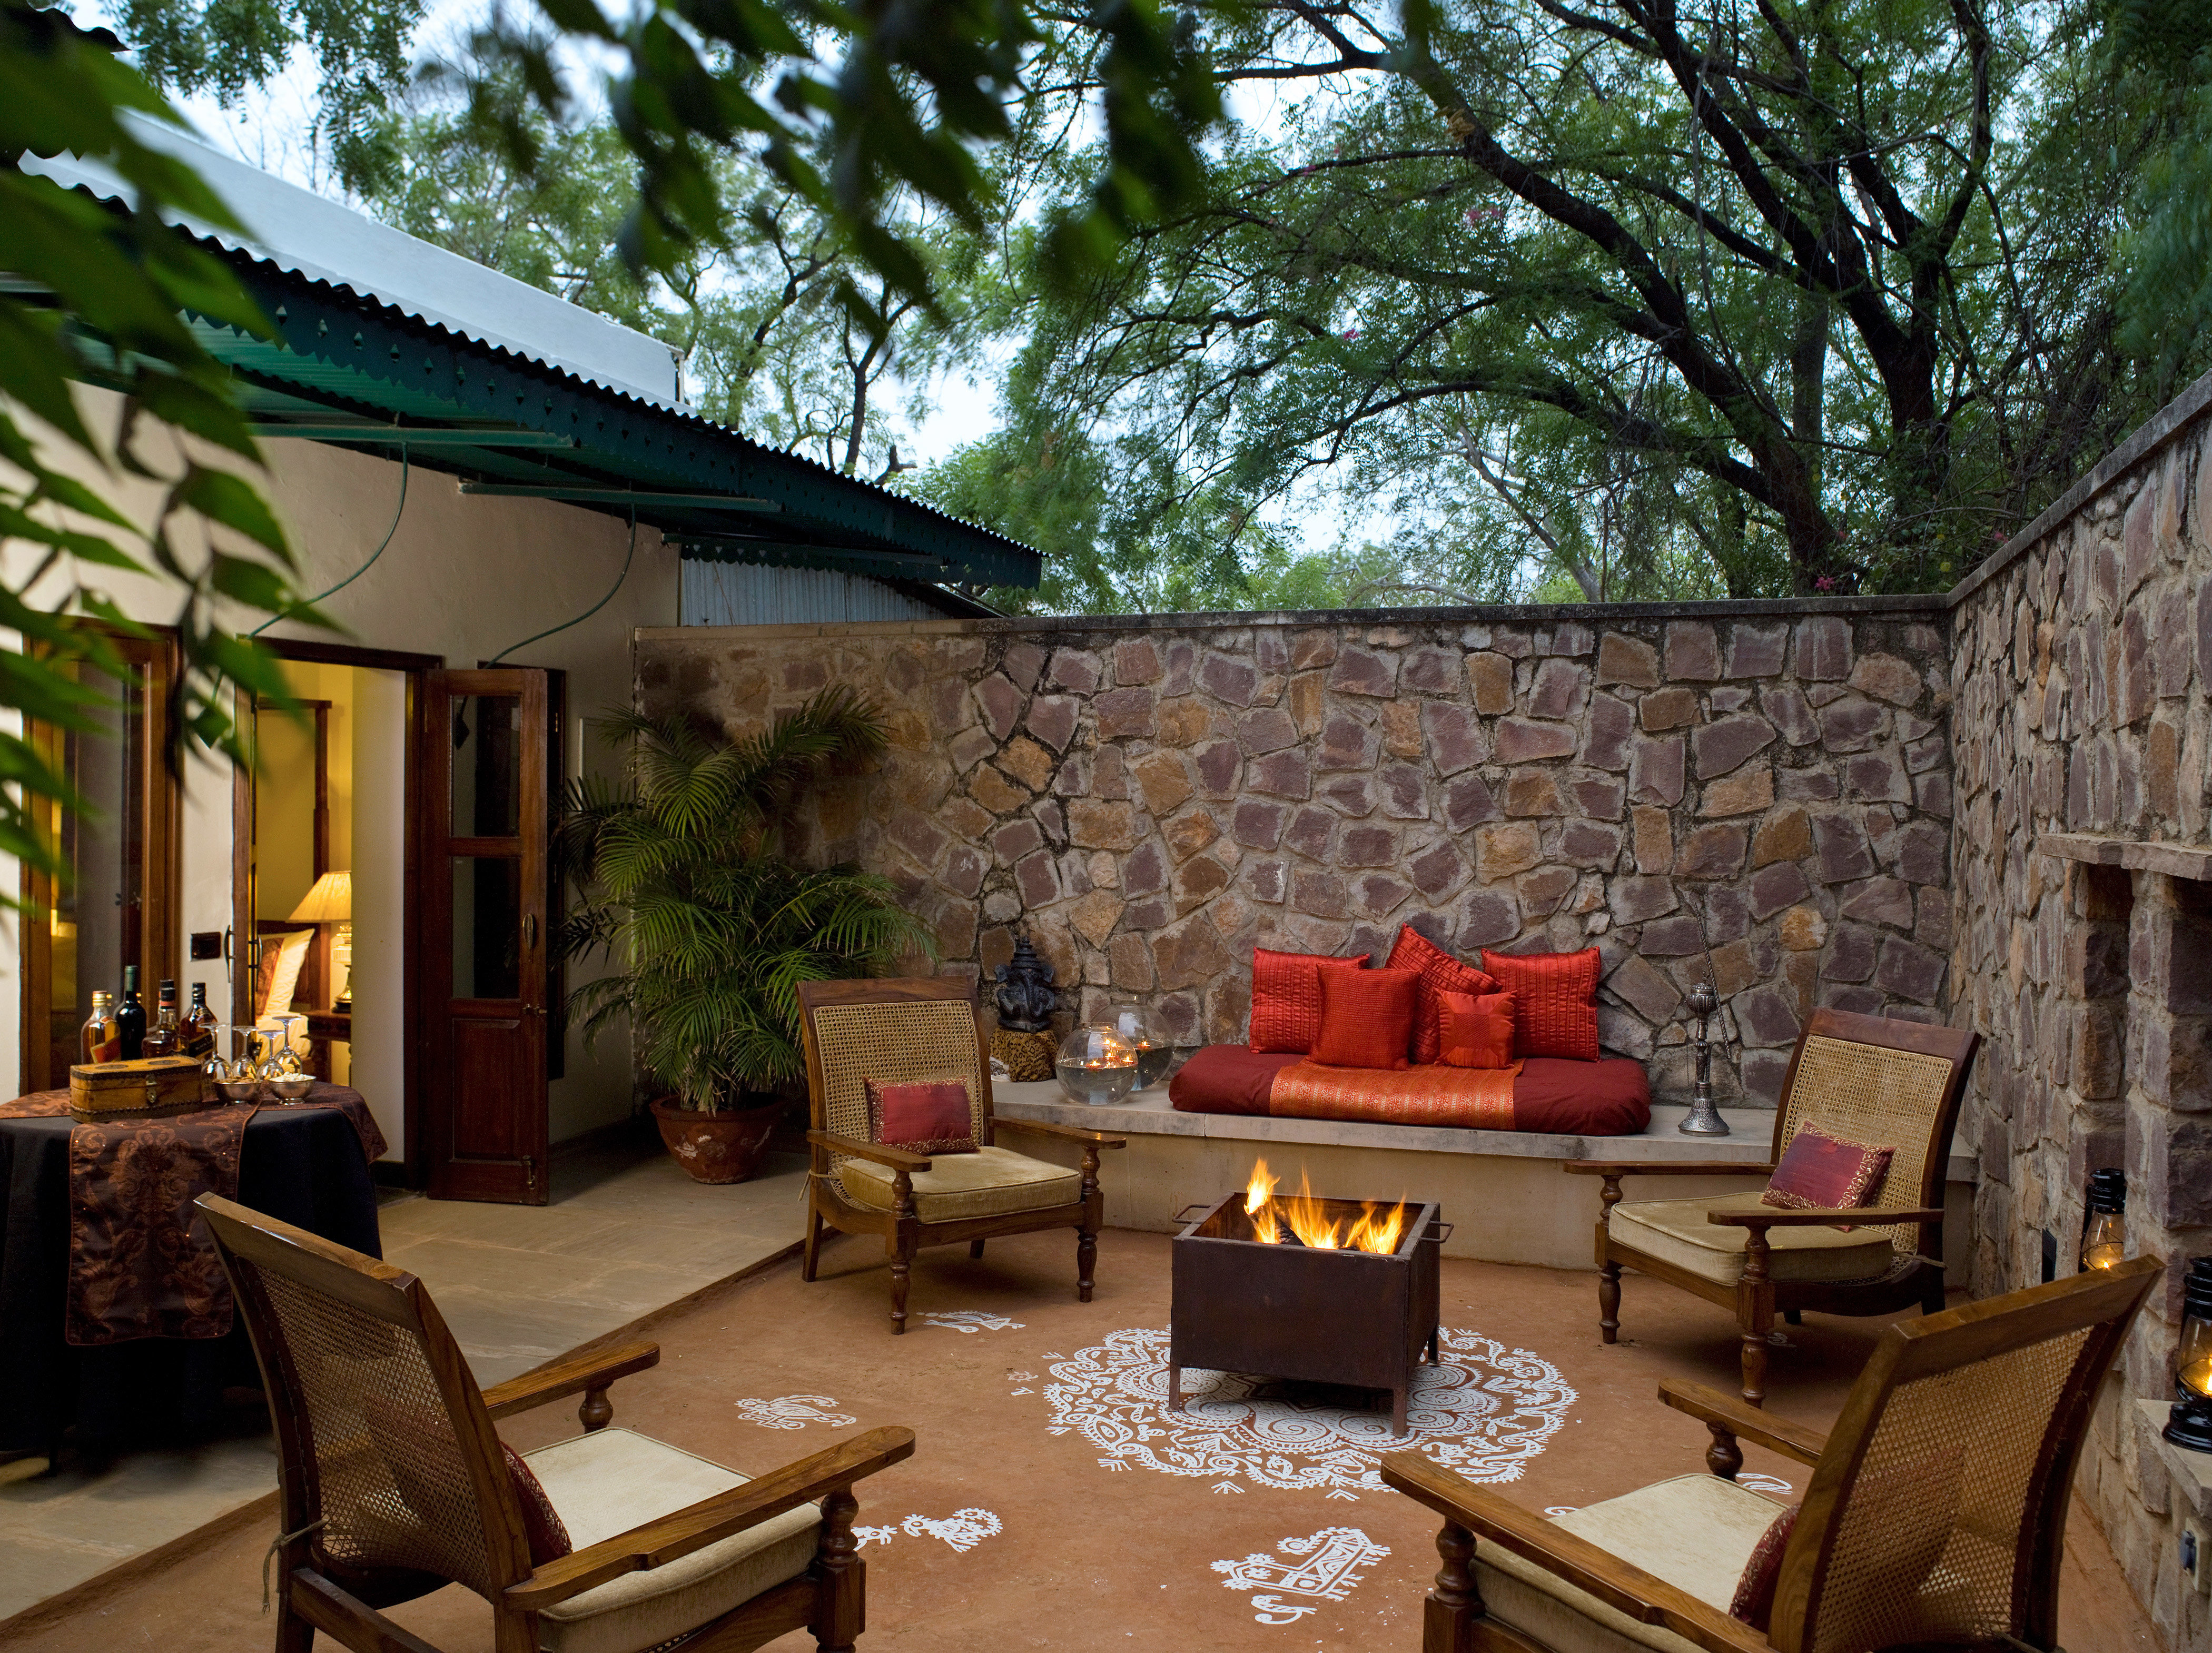 Fireplace Lodge Luxury Patio Suite tree property home backyard cottage Villa outdoor structure farmhouse Courtyard living room yard hacienda